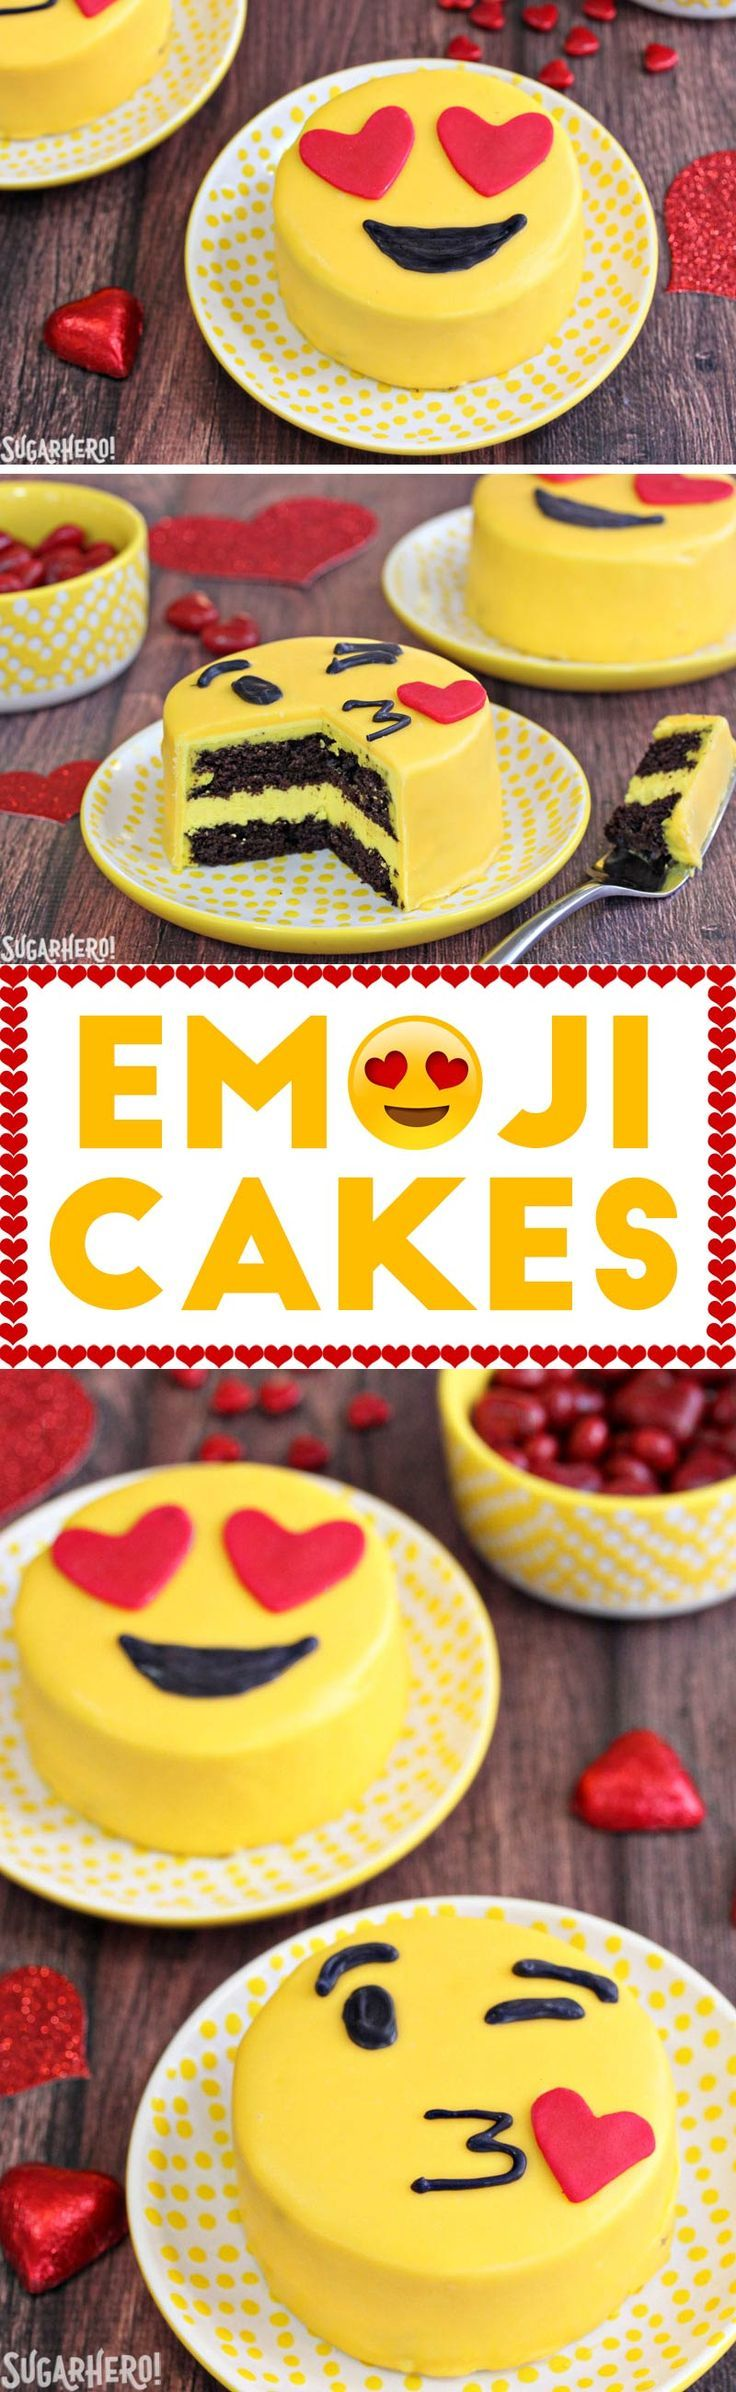 Emoji Cakes Mini Chocolate Cakes With Emoji Designs